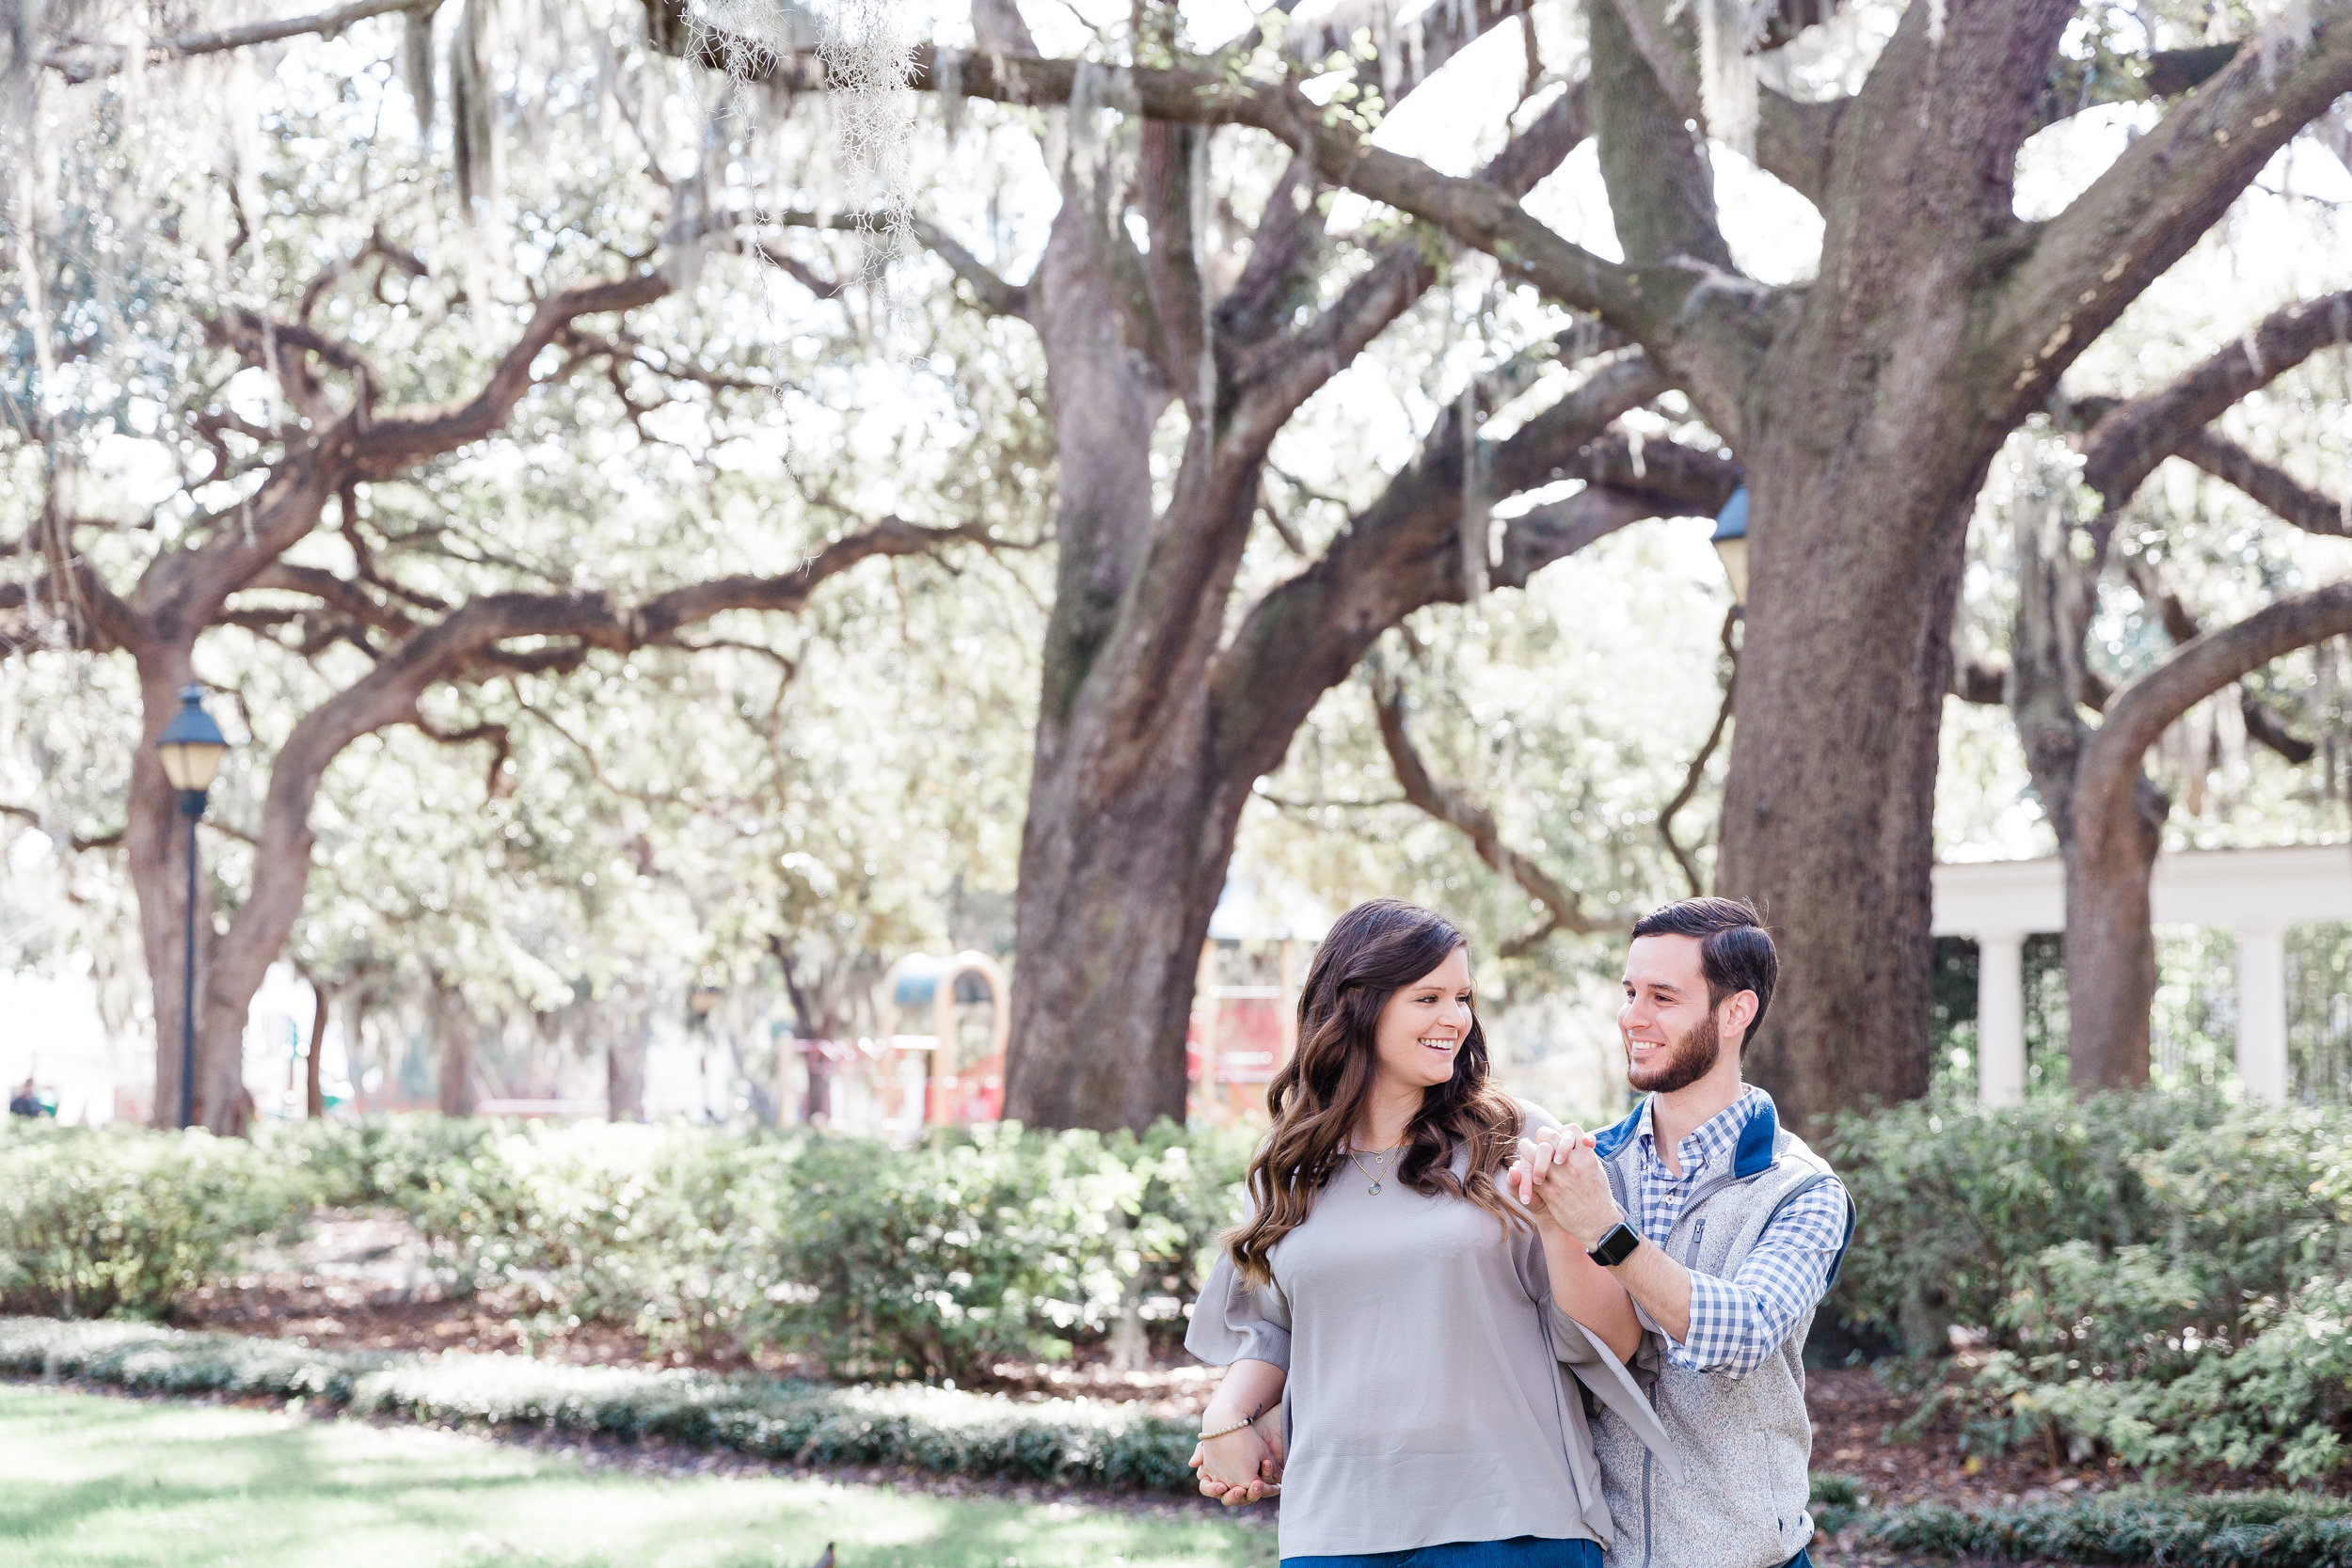 Valentines_mini_sessions_Savannah_Georgia_Photographer_Southern_Lens_Photography_Michelle_Weill_Family05.jpg